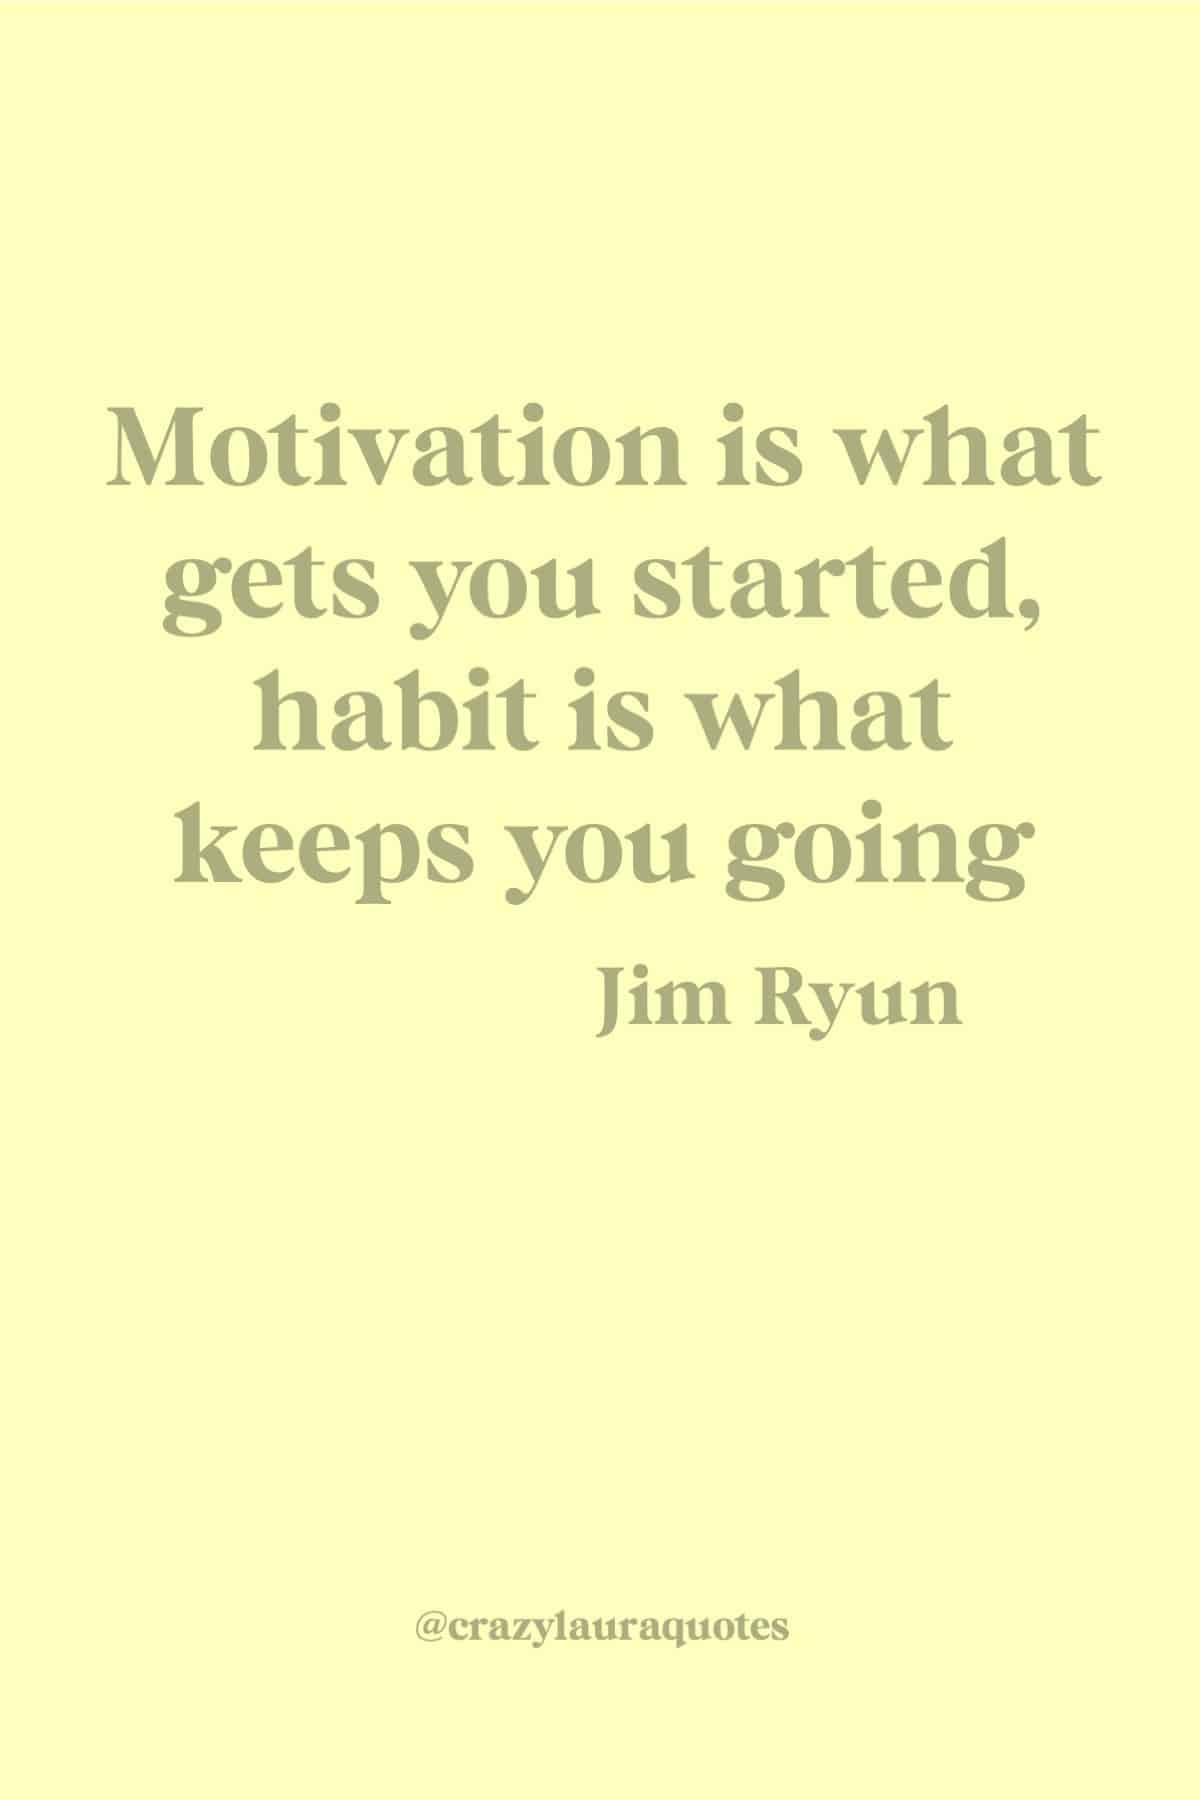 fitness habit quote to motivate